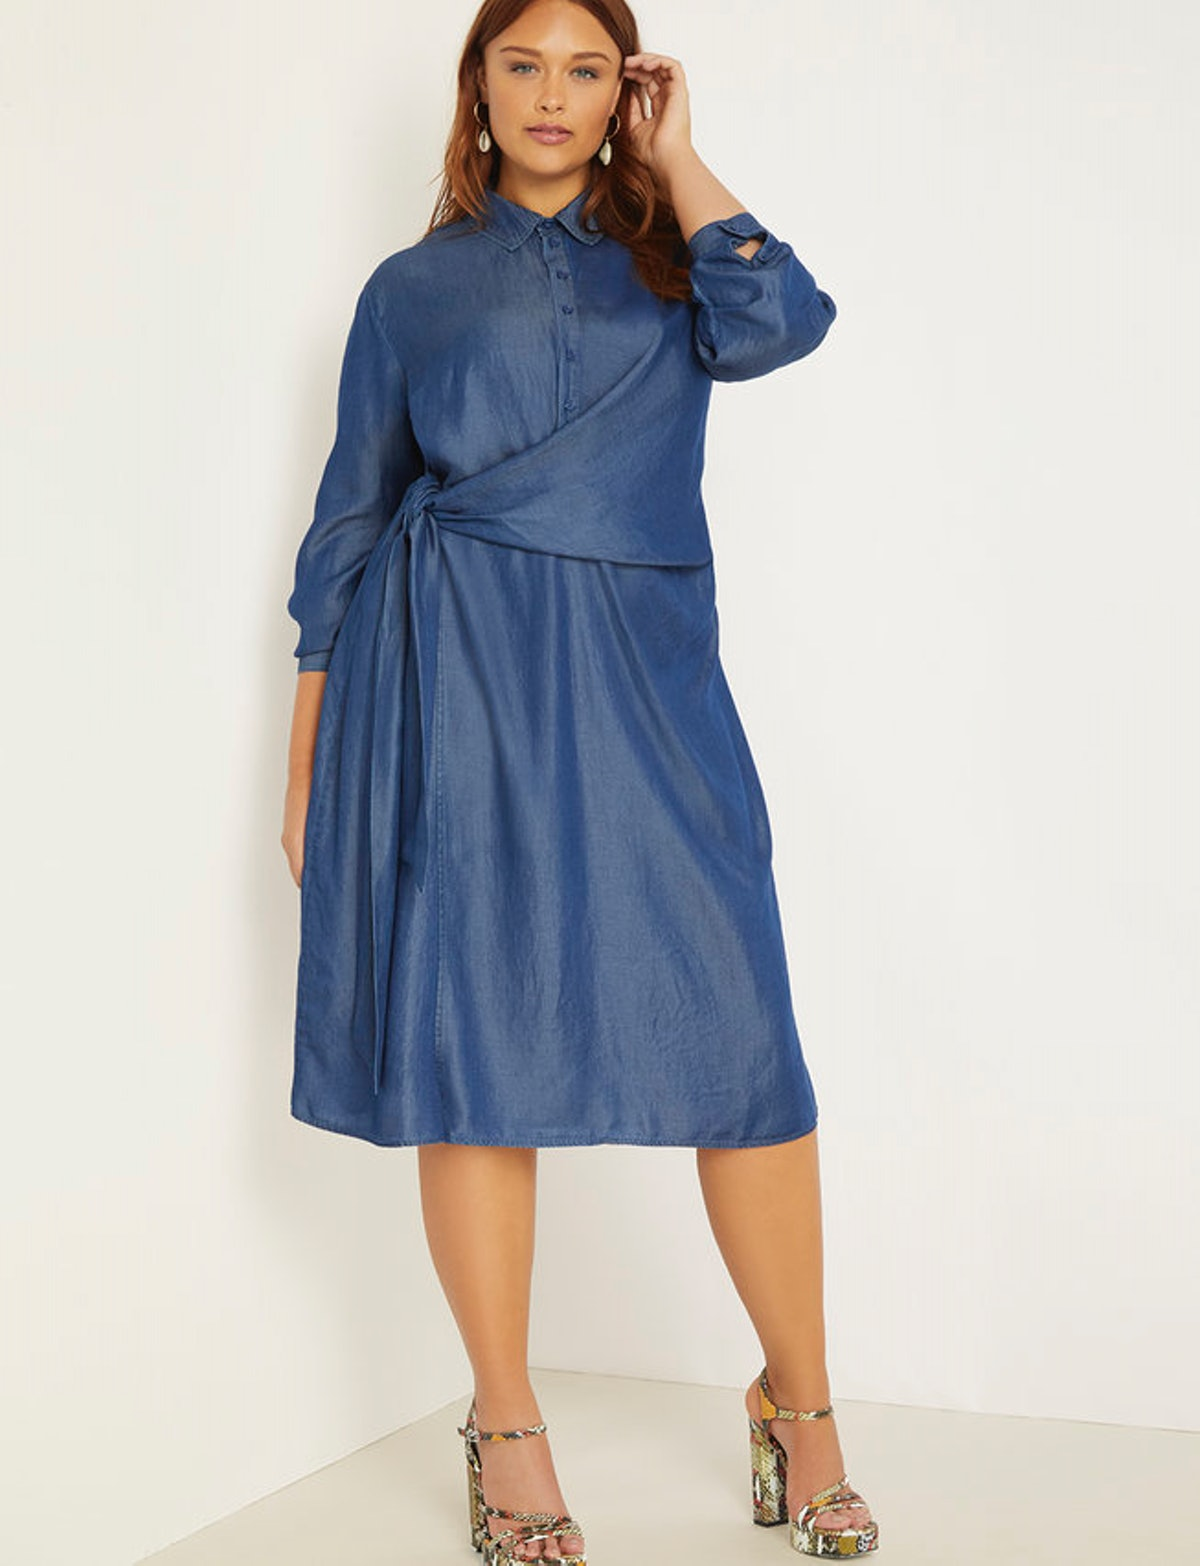 Cinched Waist Chambray Dress